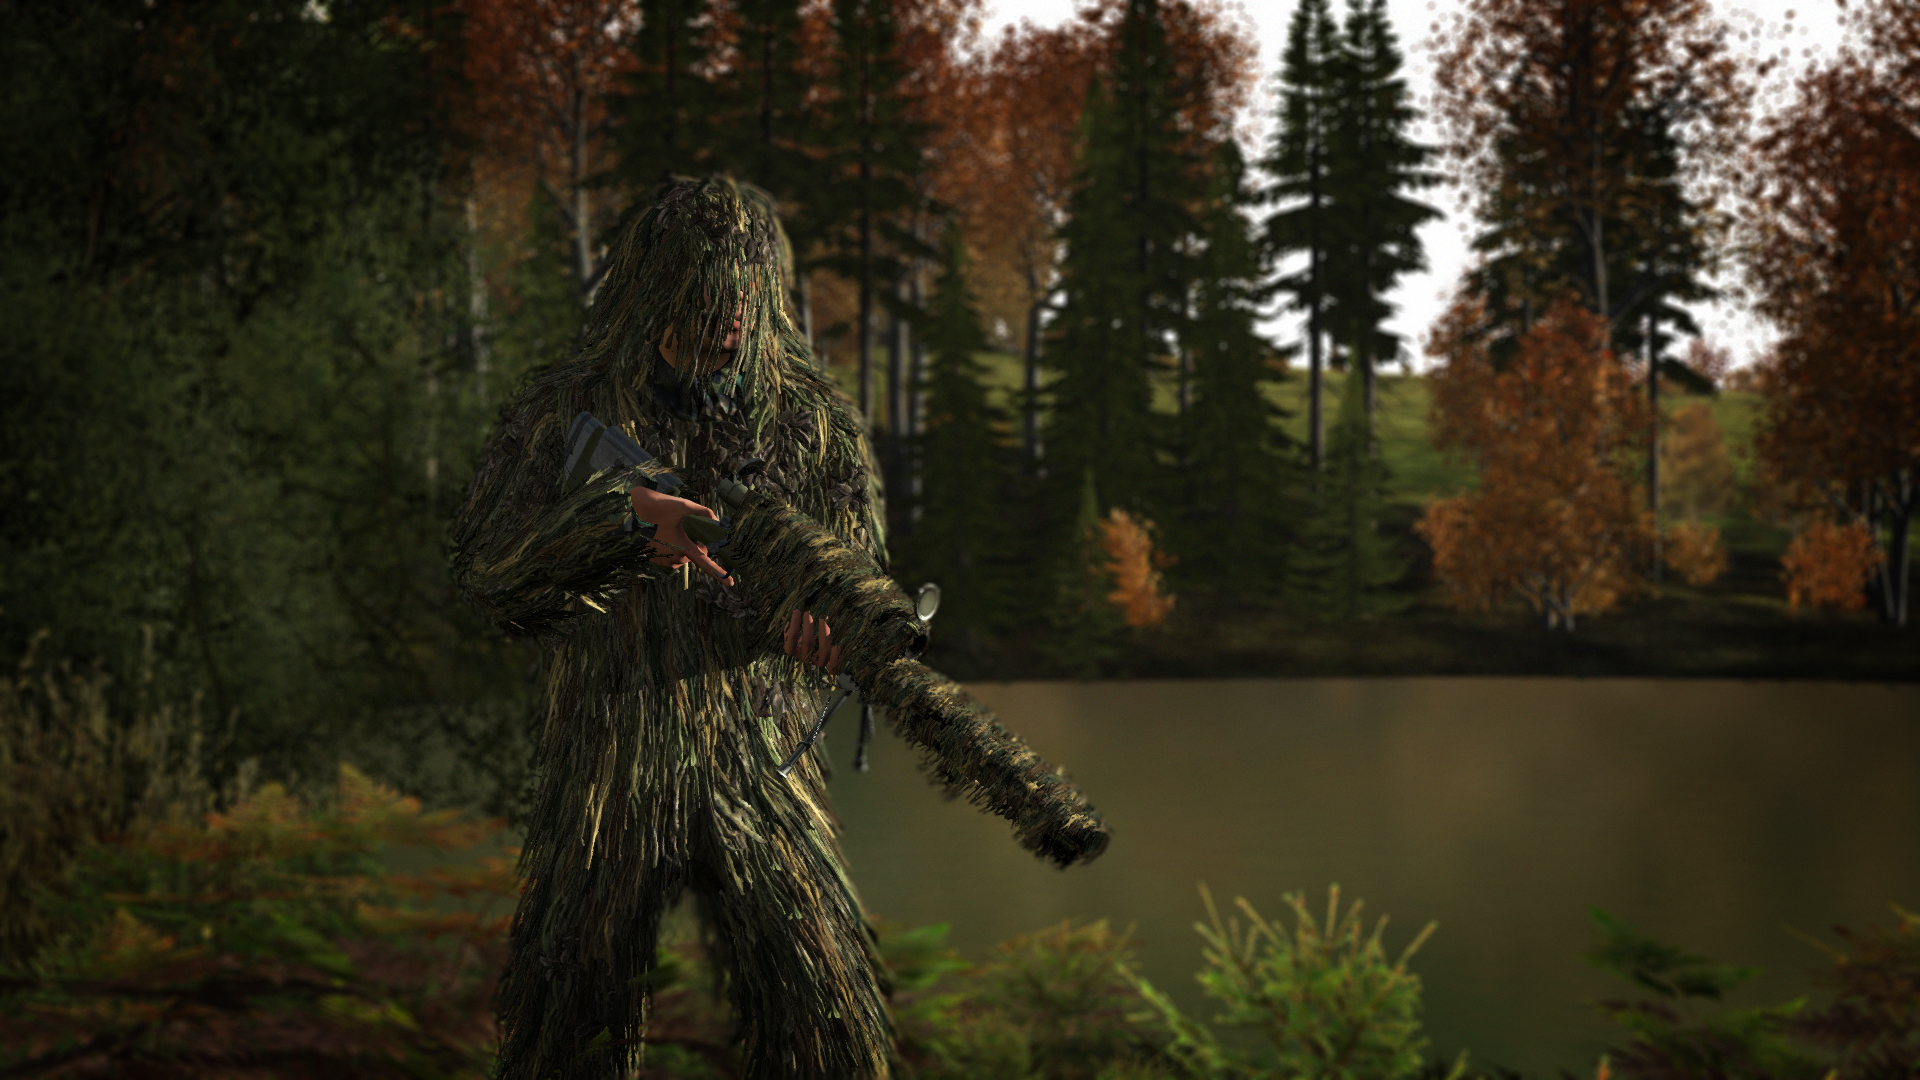 arma 2 sniper wallpaper by clarenmj customization wallpaper hdtv 1920x1080